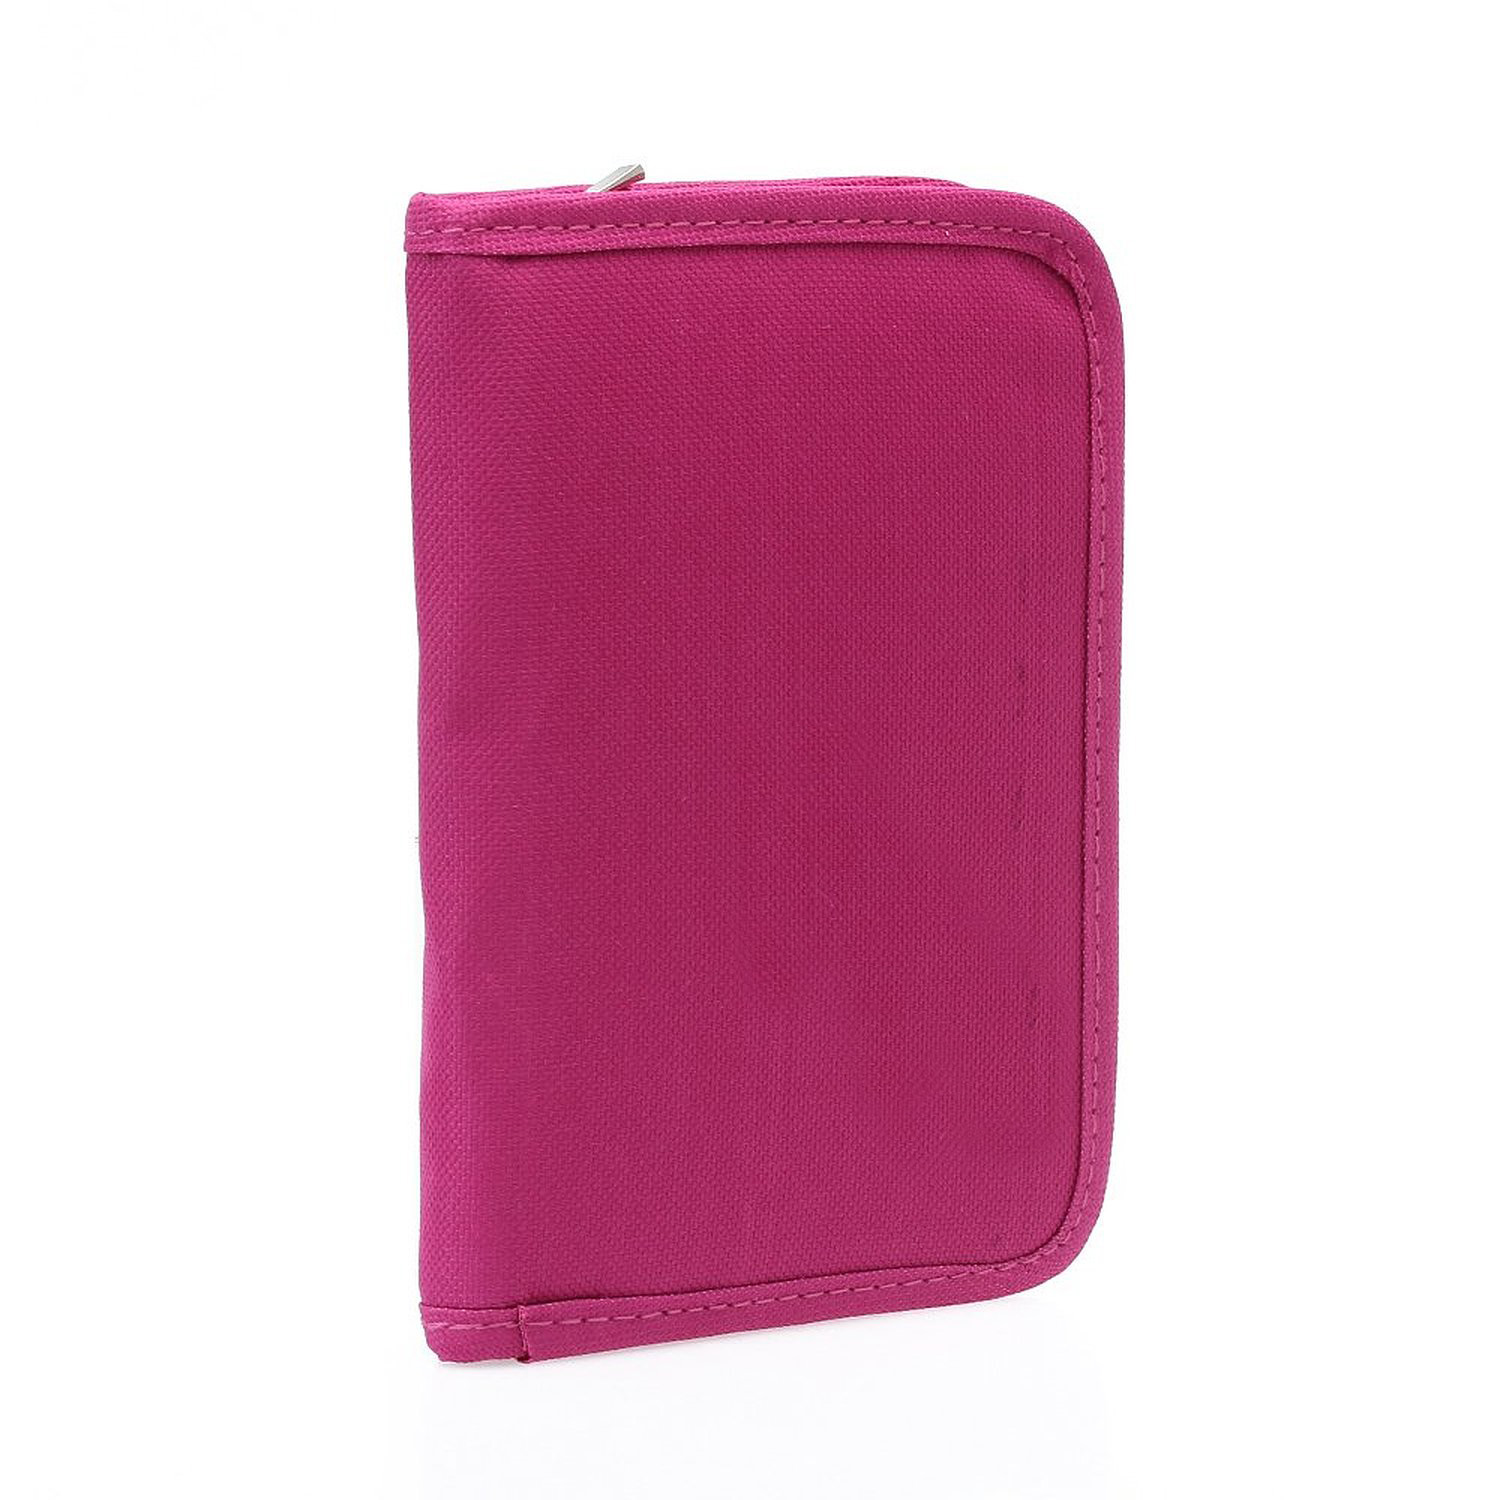 Women Multifunctional Canvas Clutch Bag Wallet Card Passport Holder Fuchsia